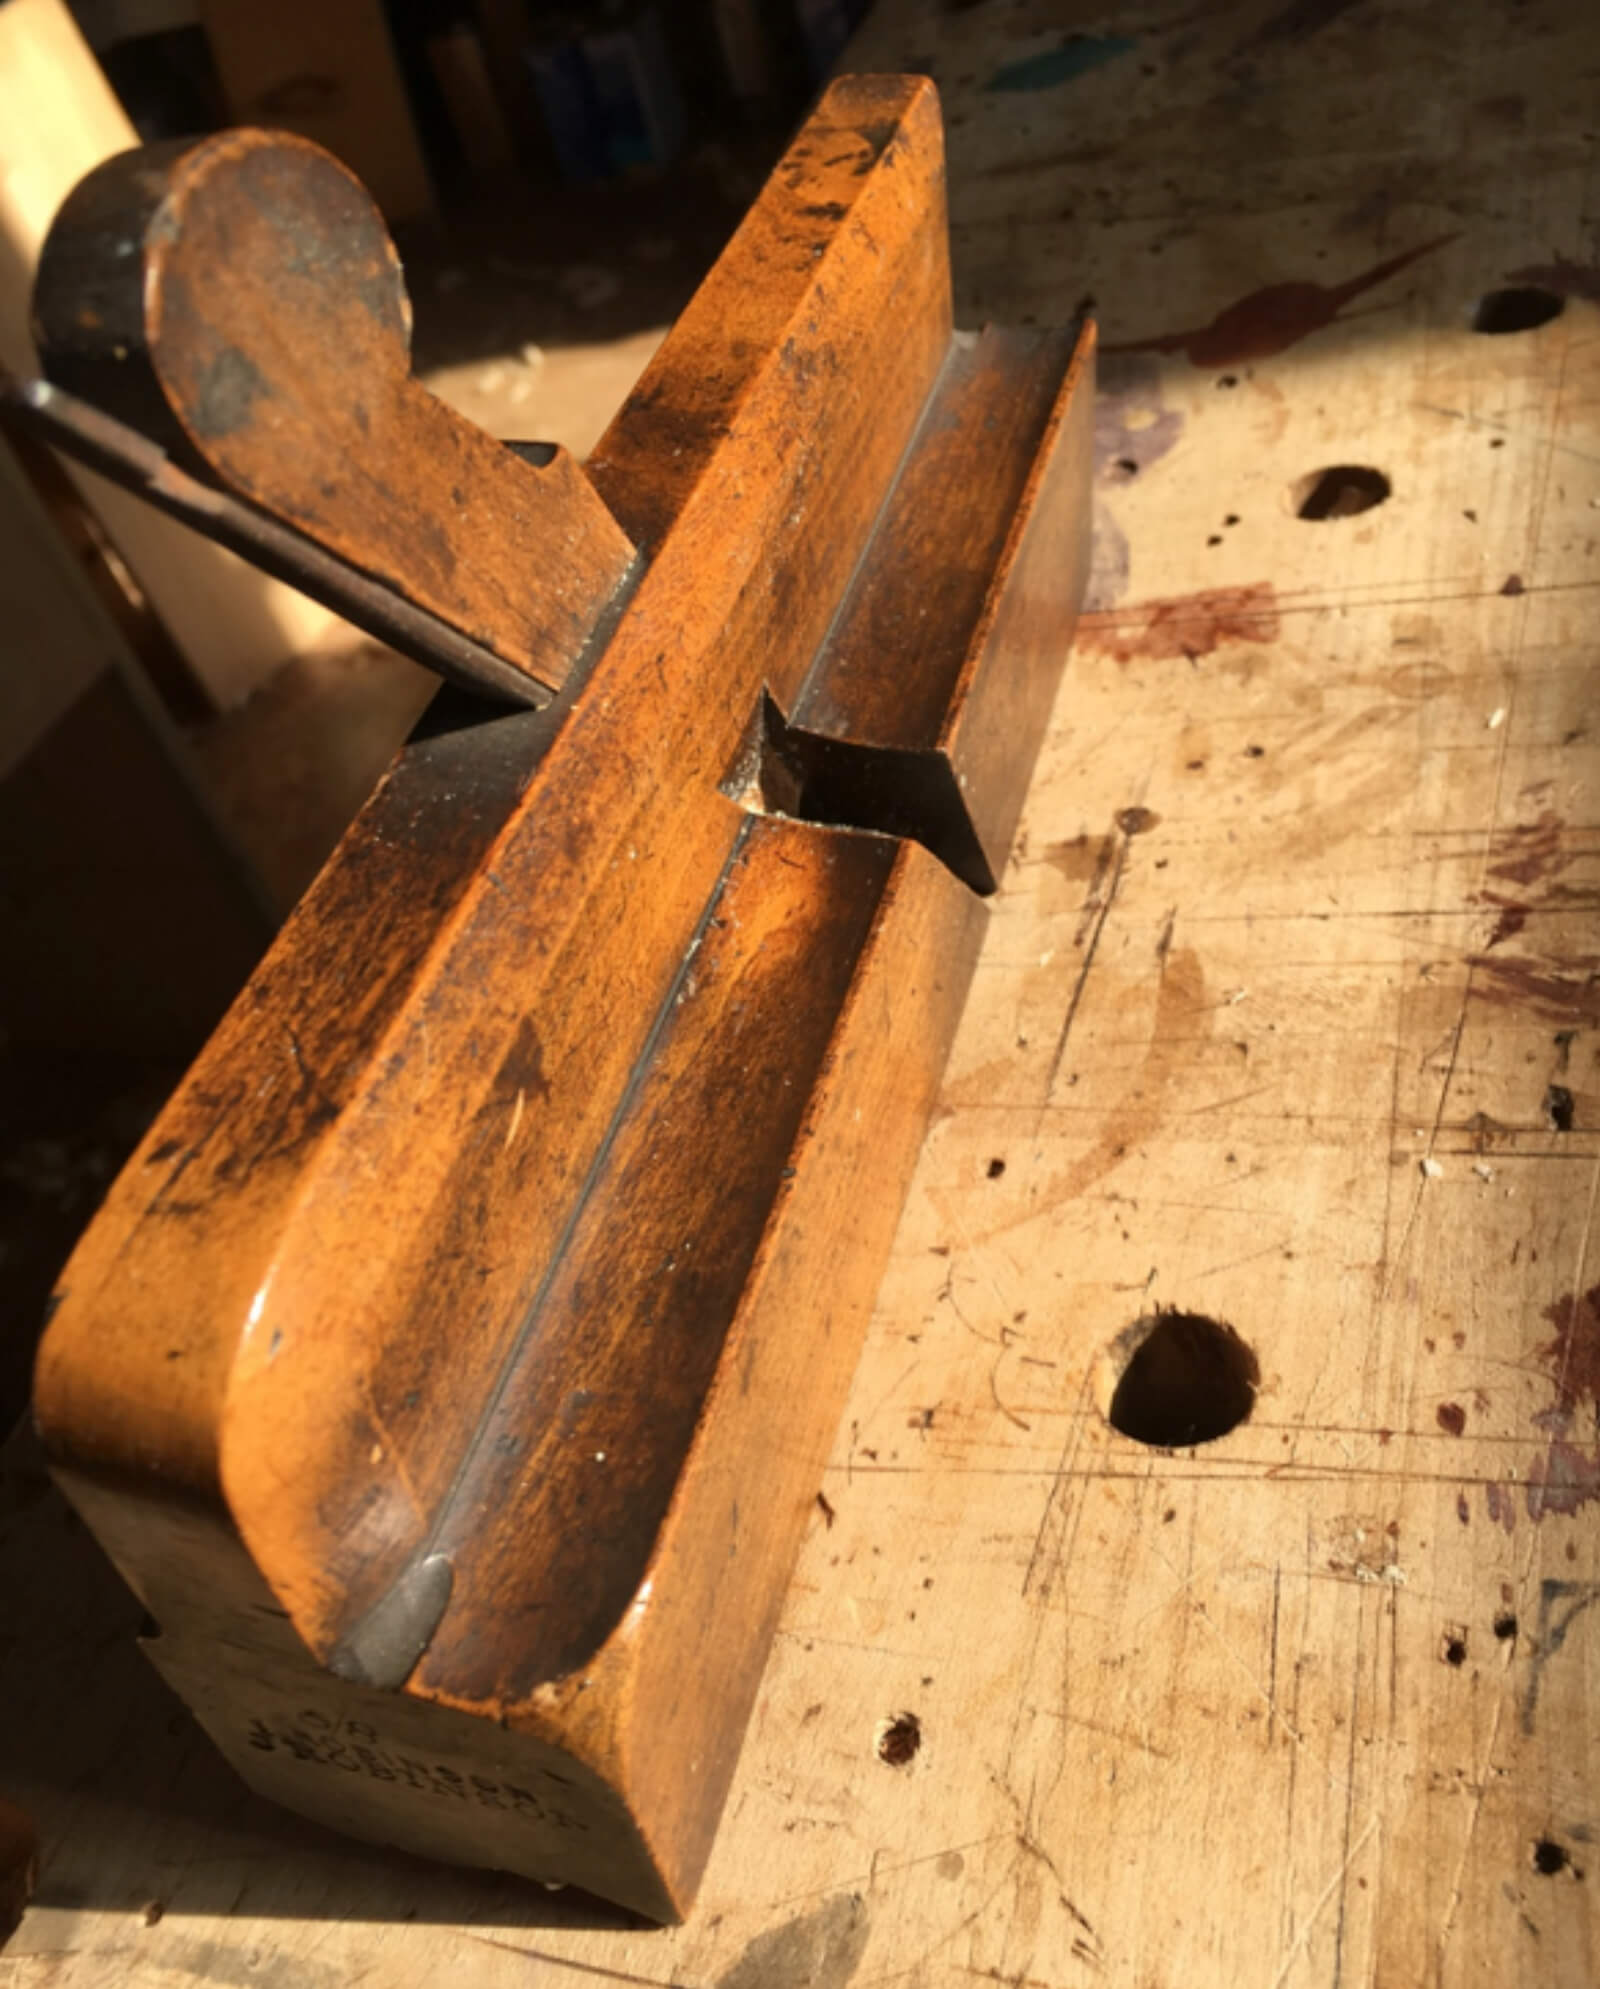 How to hold a molding plane